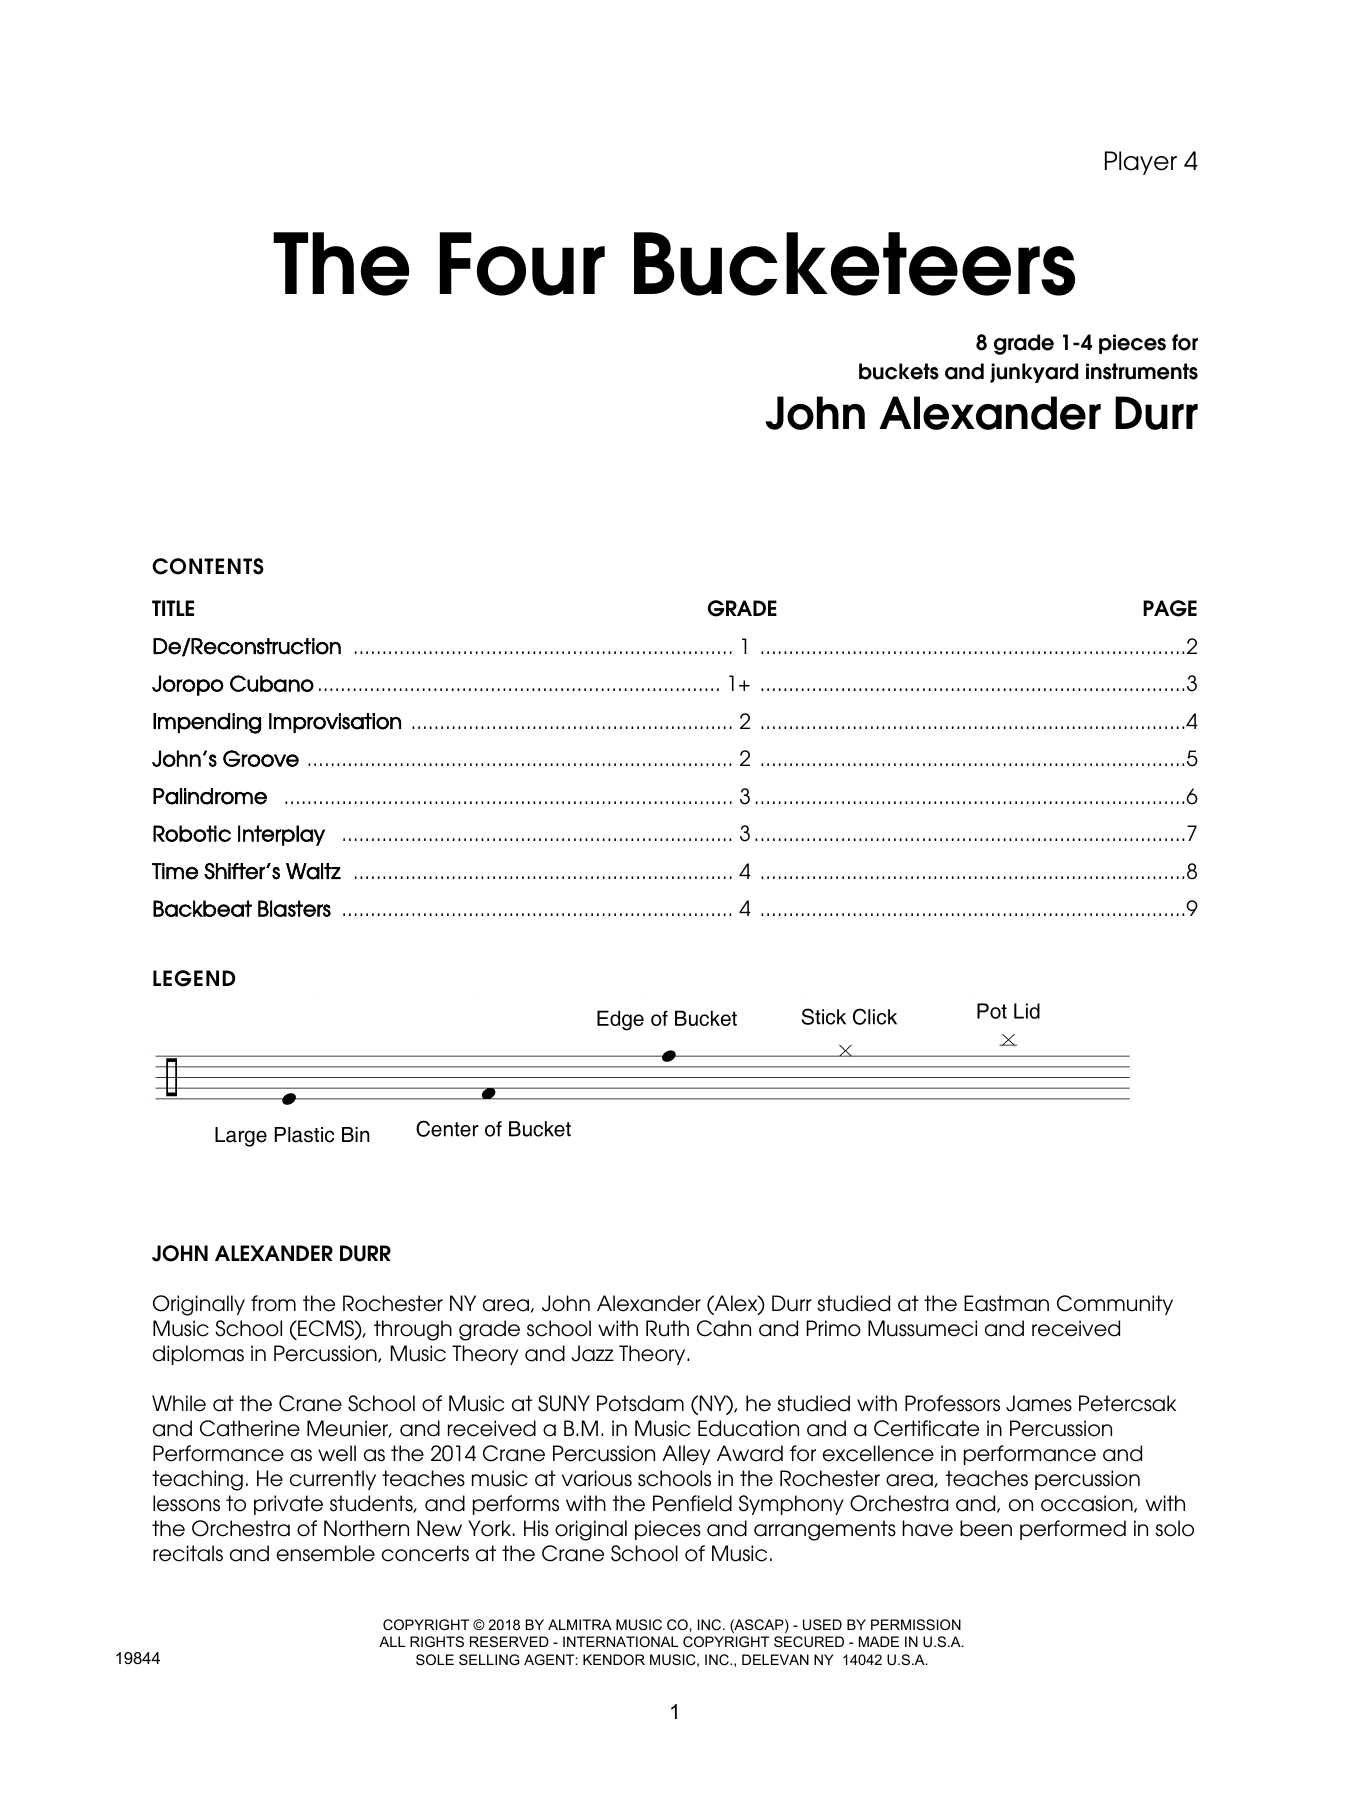 The Four Bucketeers - Percussion 4 by John Durr Percussion Ensemble Digital  Sheet Music